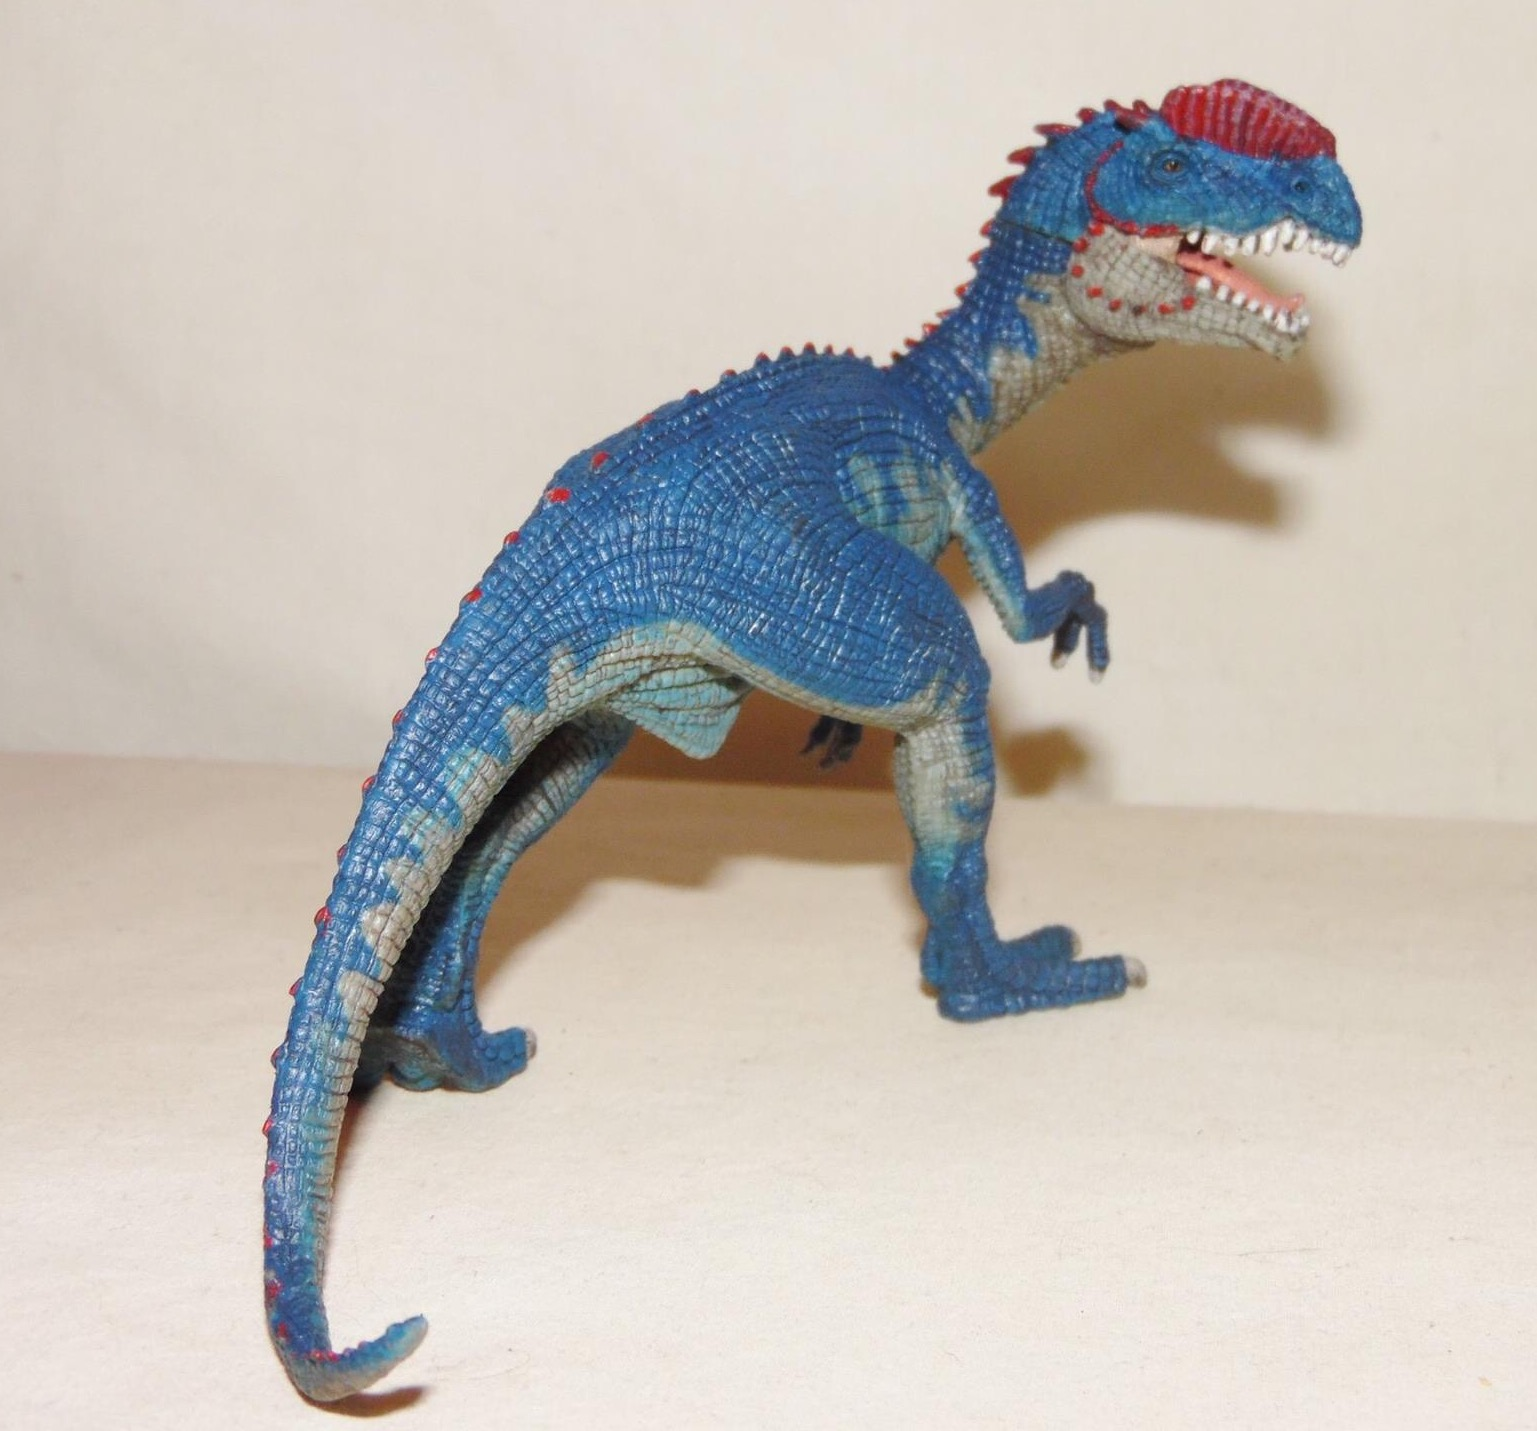 Dinosaurs Toys Collection : Dilophosaurus the first giants by schleich dinosaur